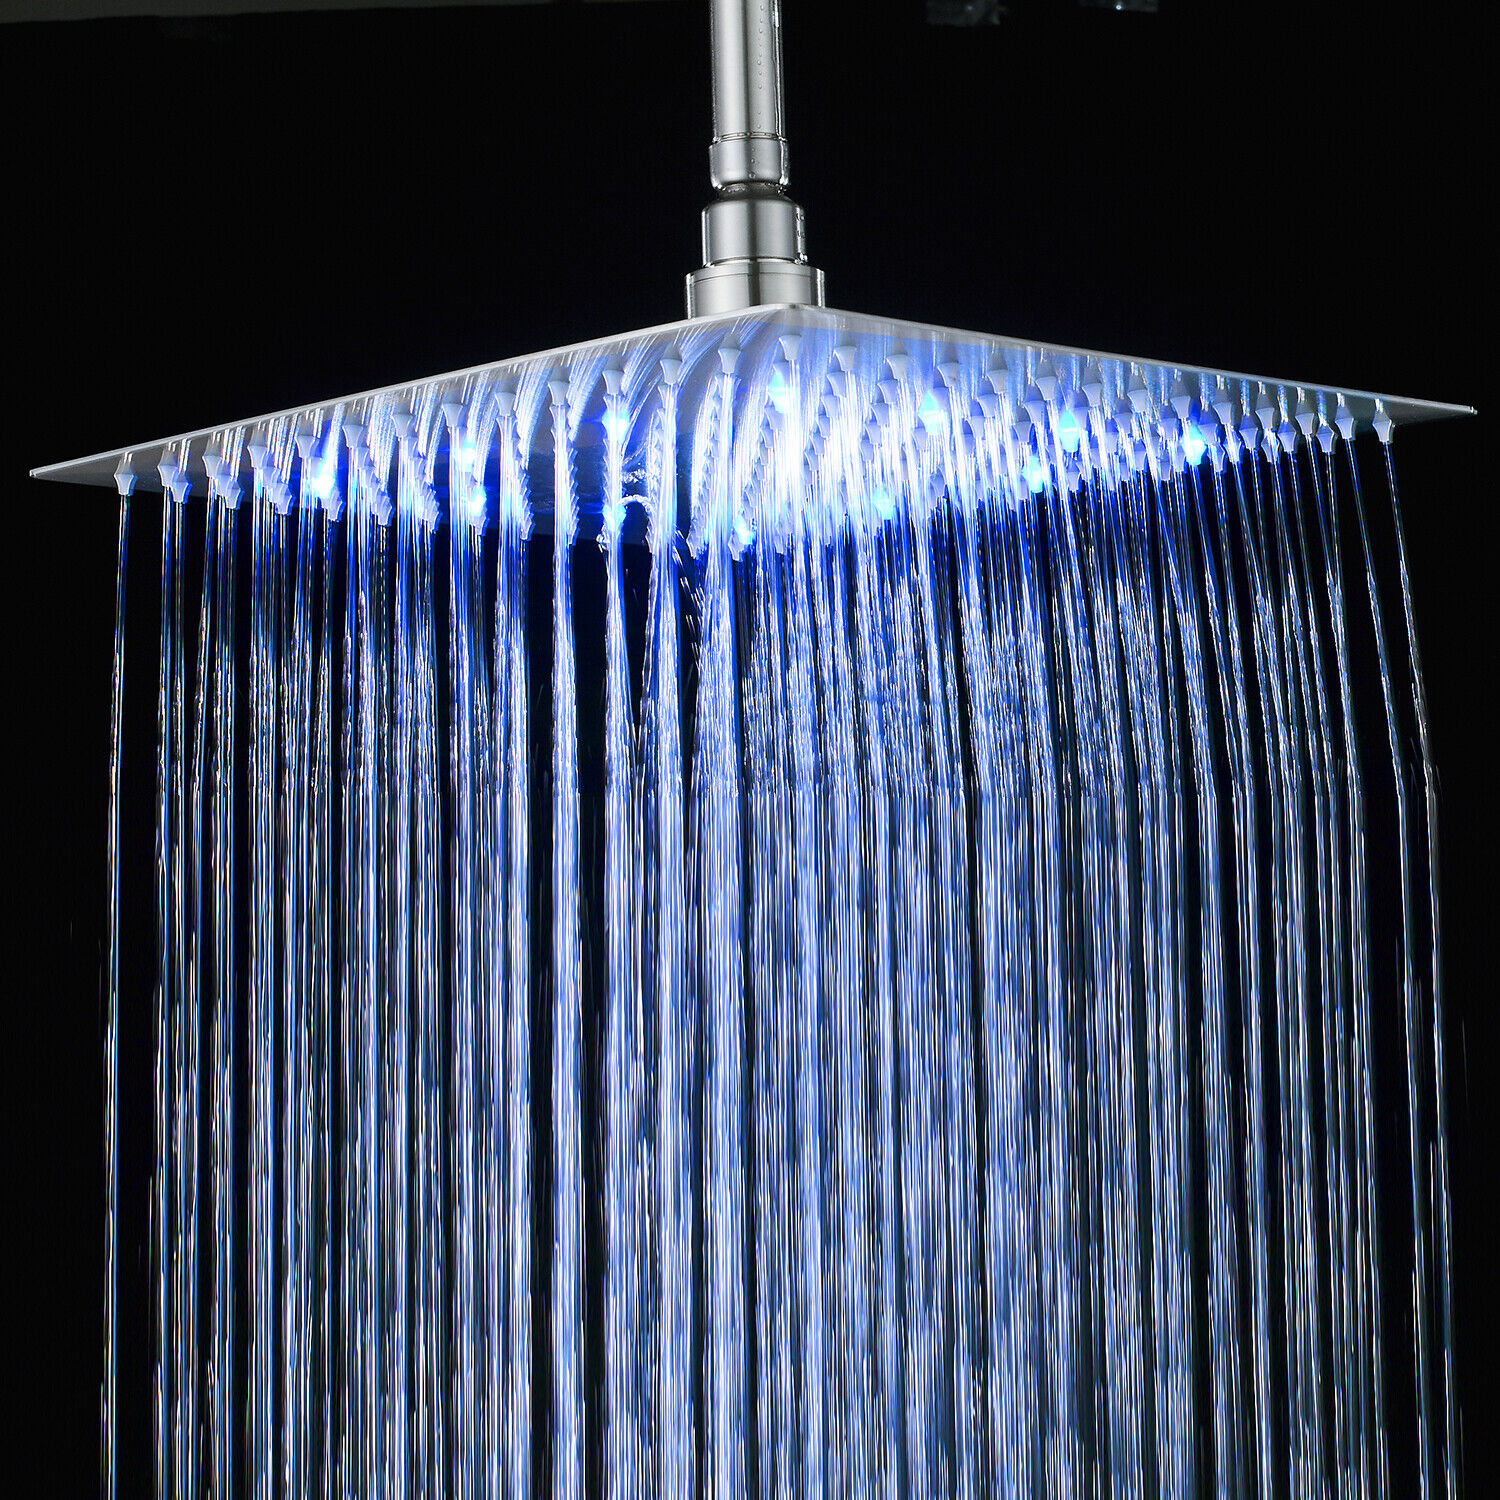 Details About Bathroom 8 Inch Led Rain Shower Head Brushed Nickel Square Top Sprayer